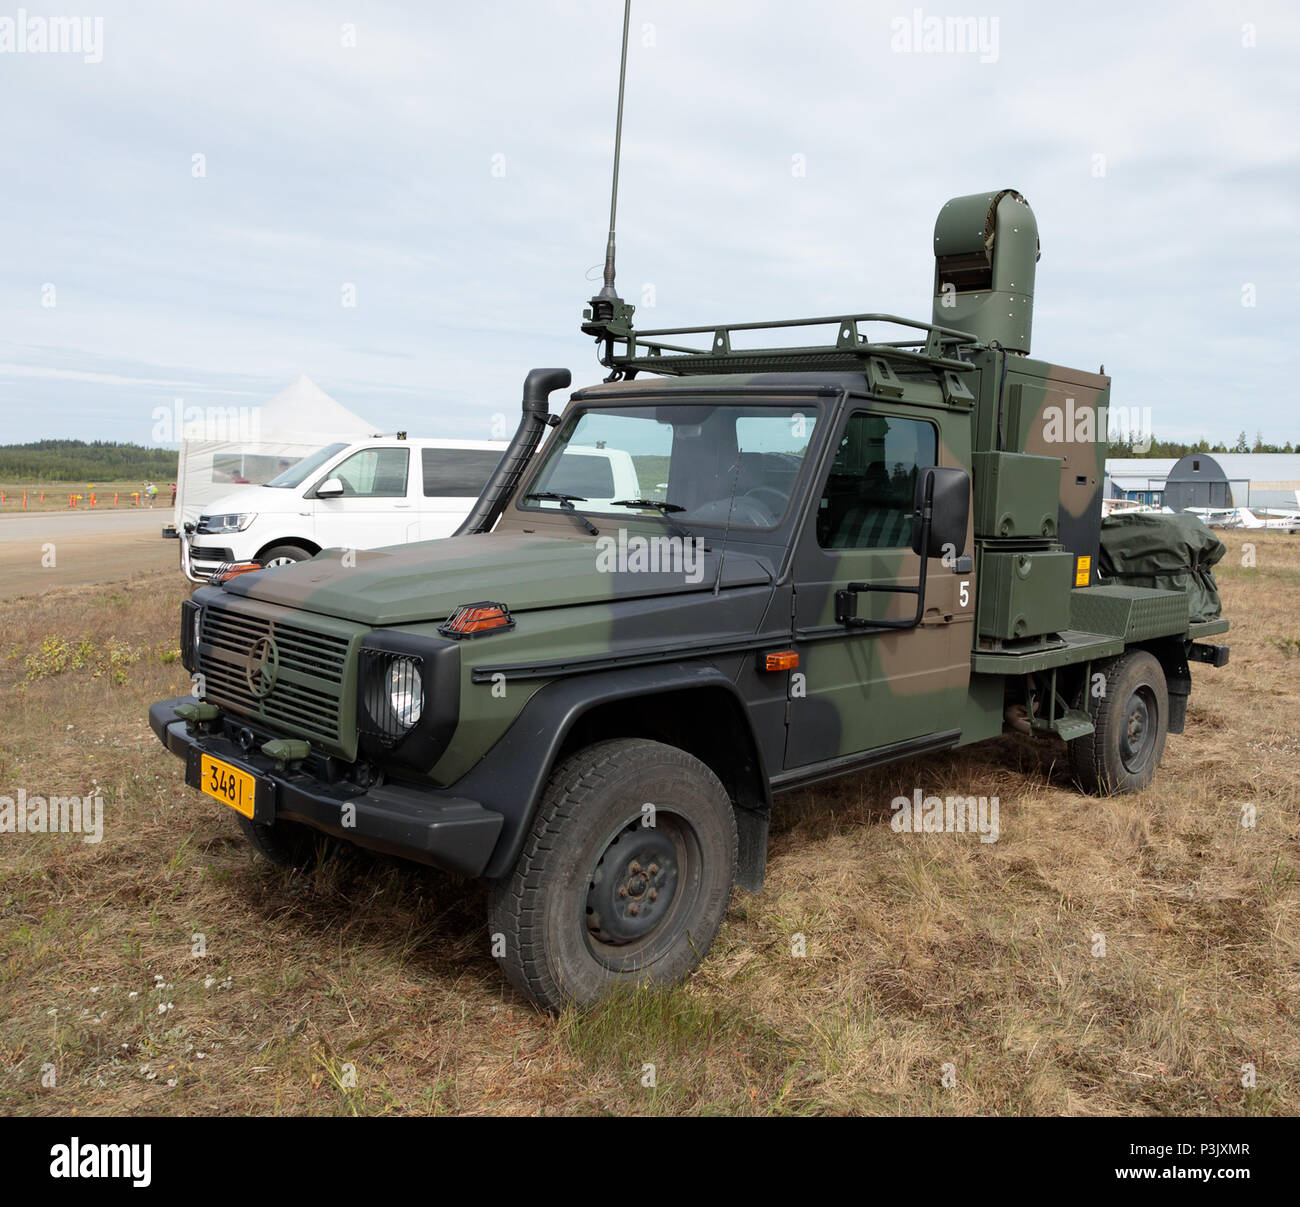 Modular Sensor Platform MSP 600 mounted on a Mercedes 4WD vehicle, integrated with the NASAMS 2 surface-to-air missile system of the Finnish Army. - Stock Image